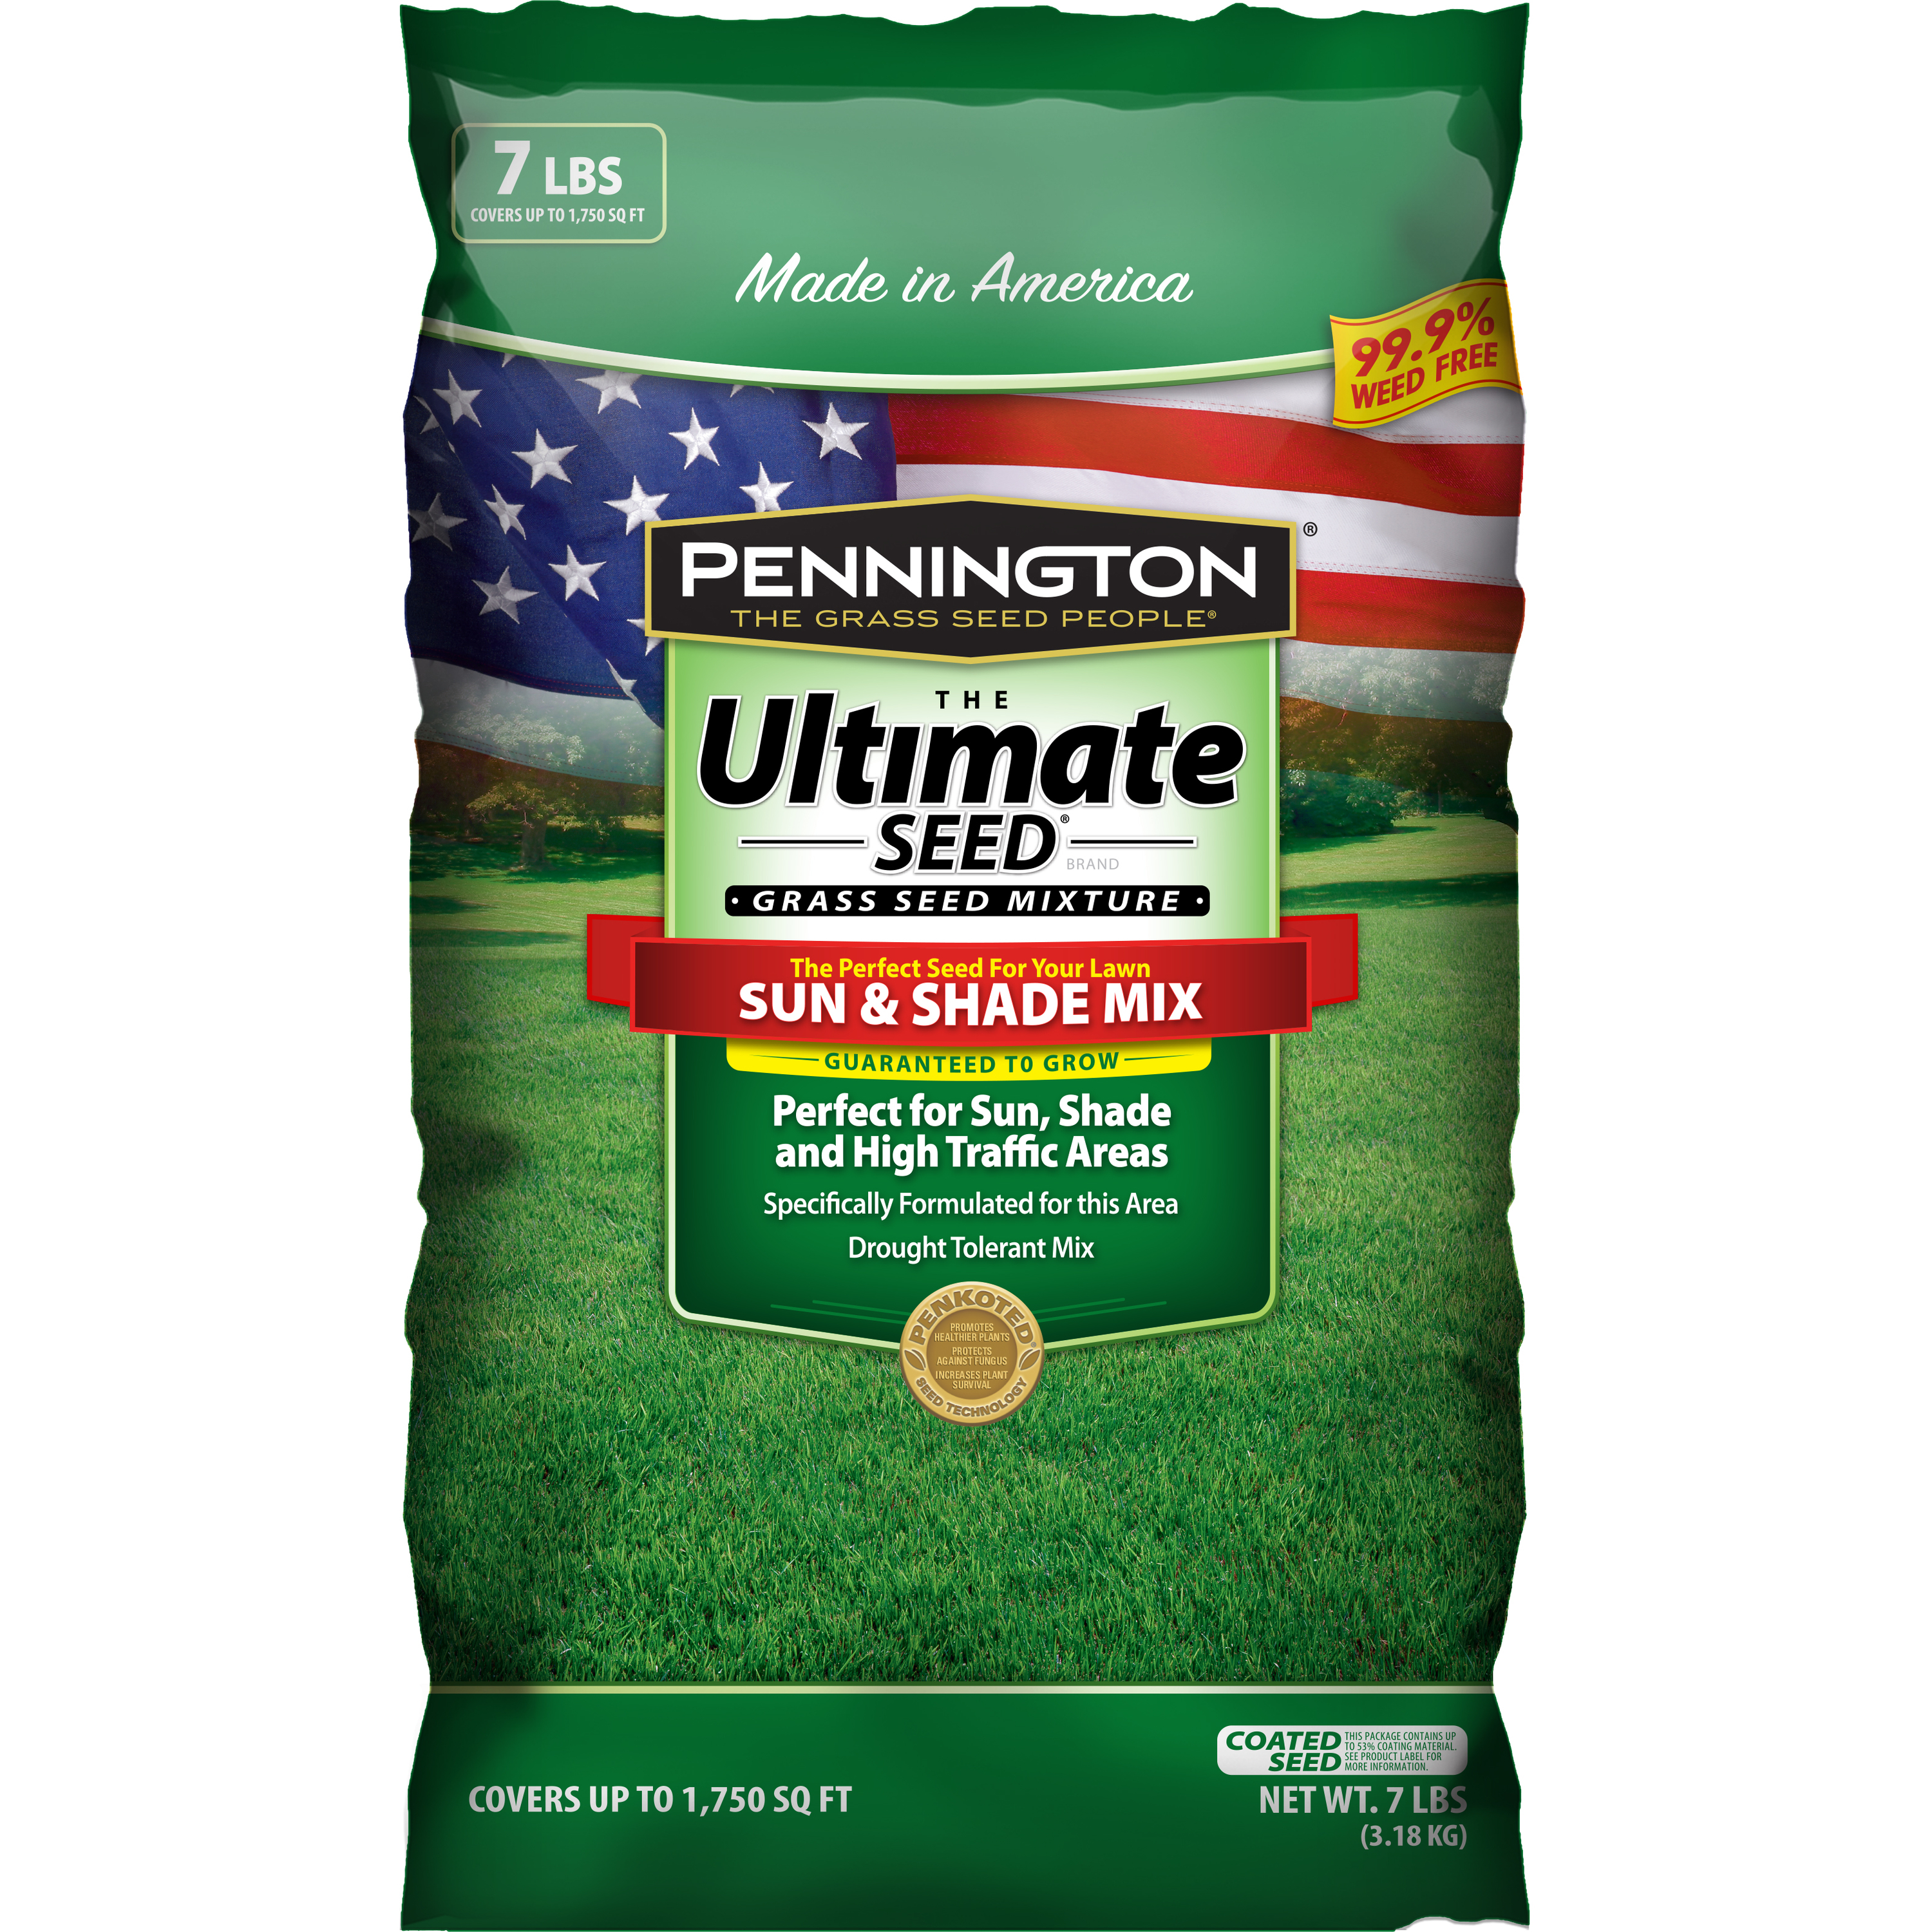 Image of Pennington Ultimate Sun and Shade Grass Central Seed Mixture, 7 lb bag